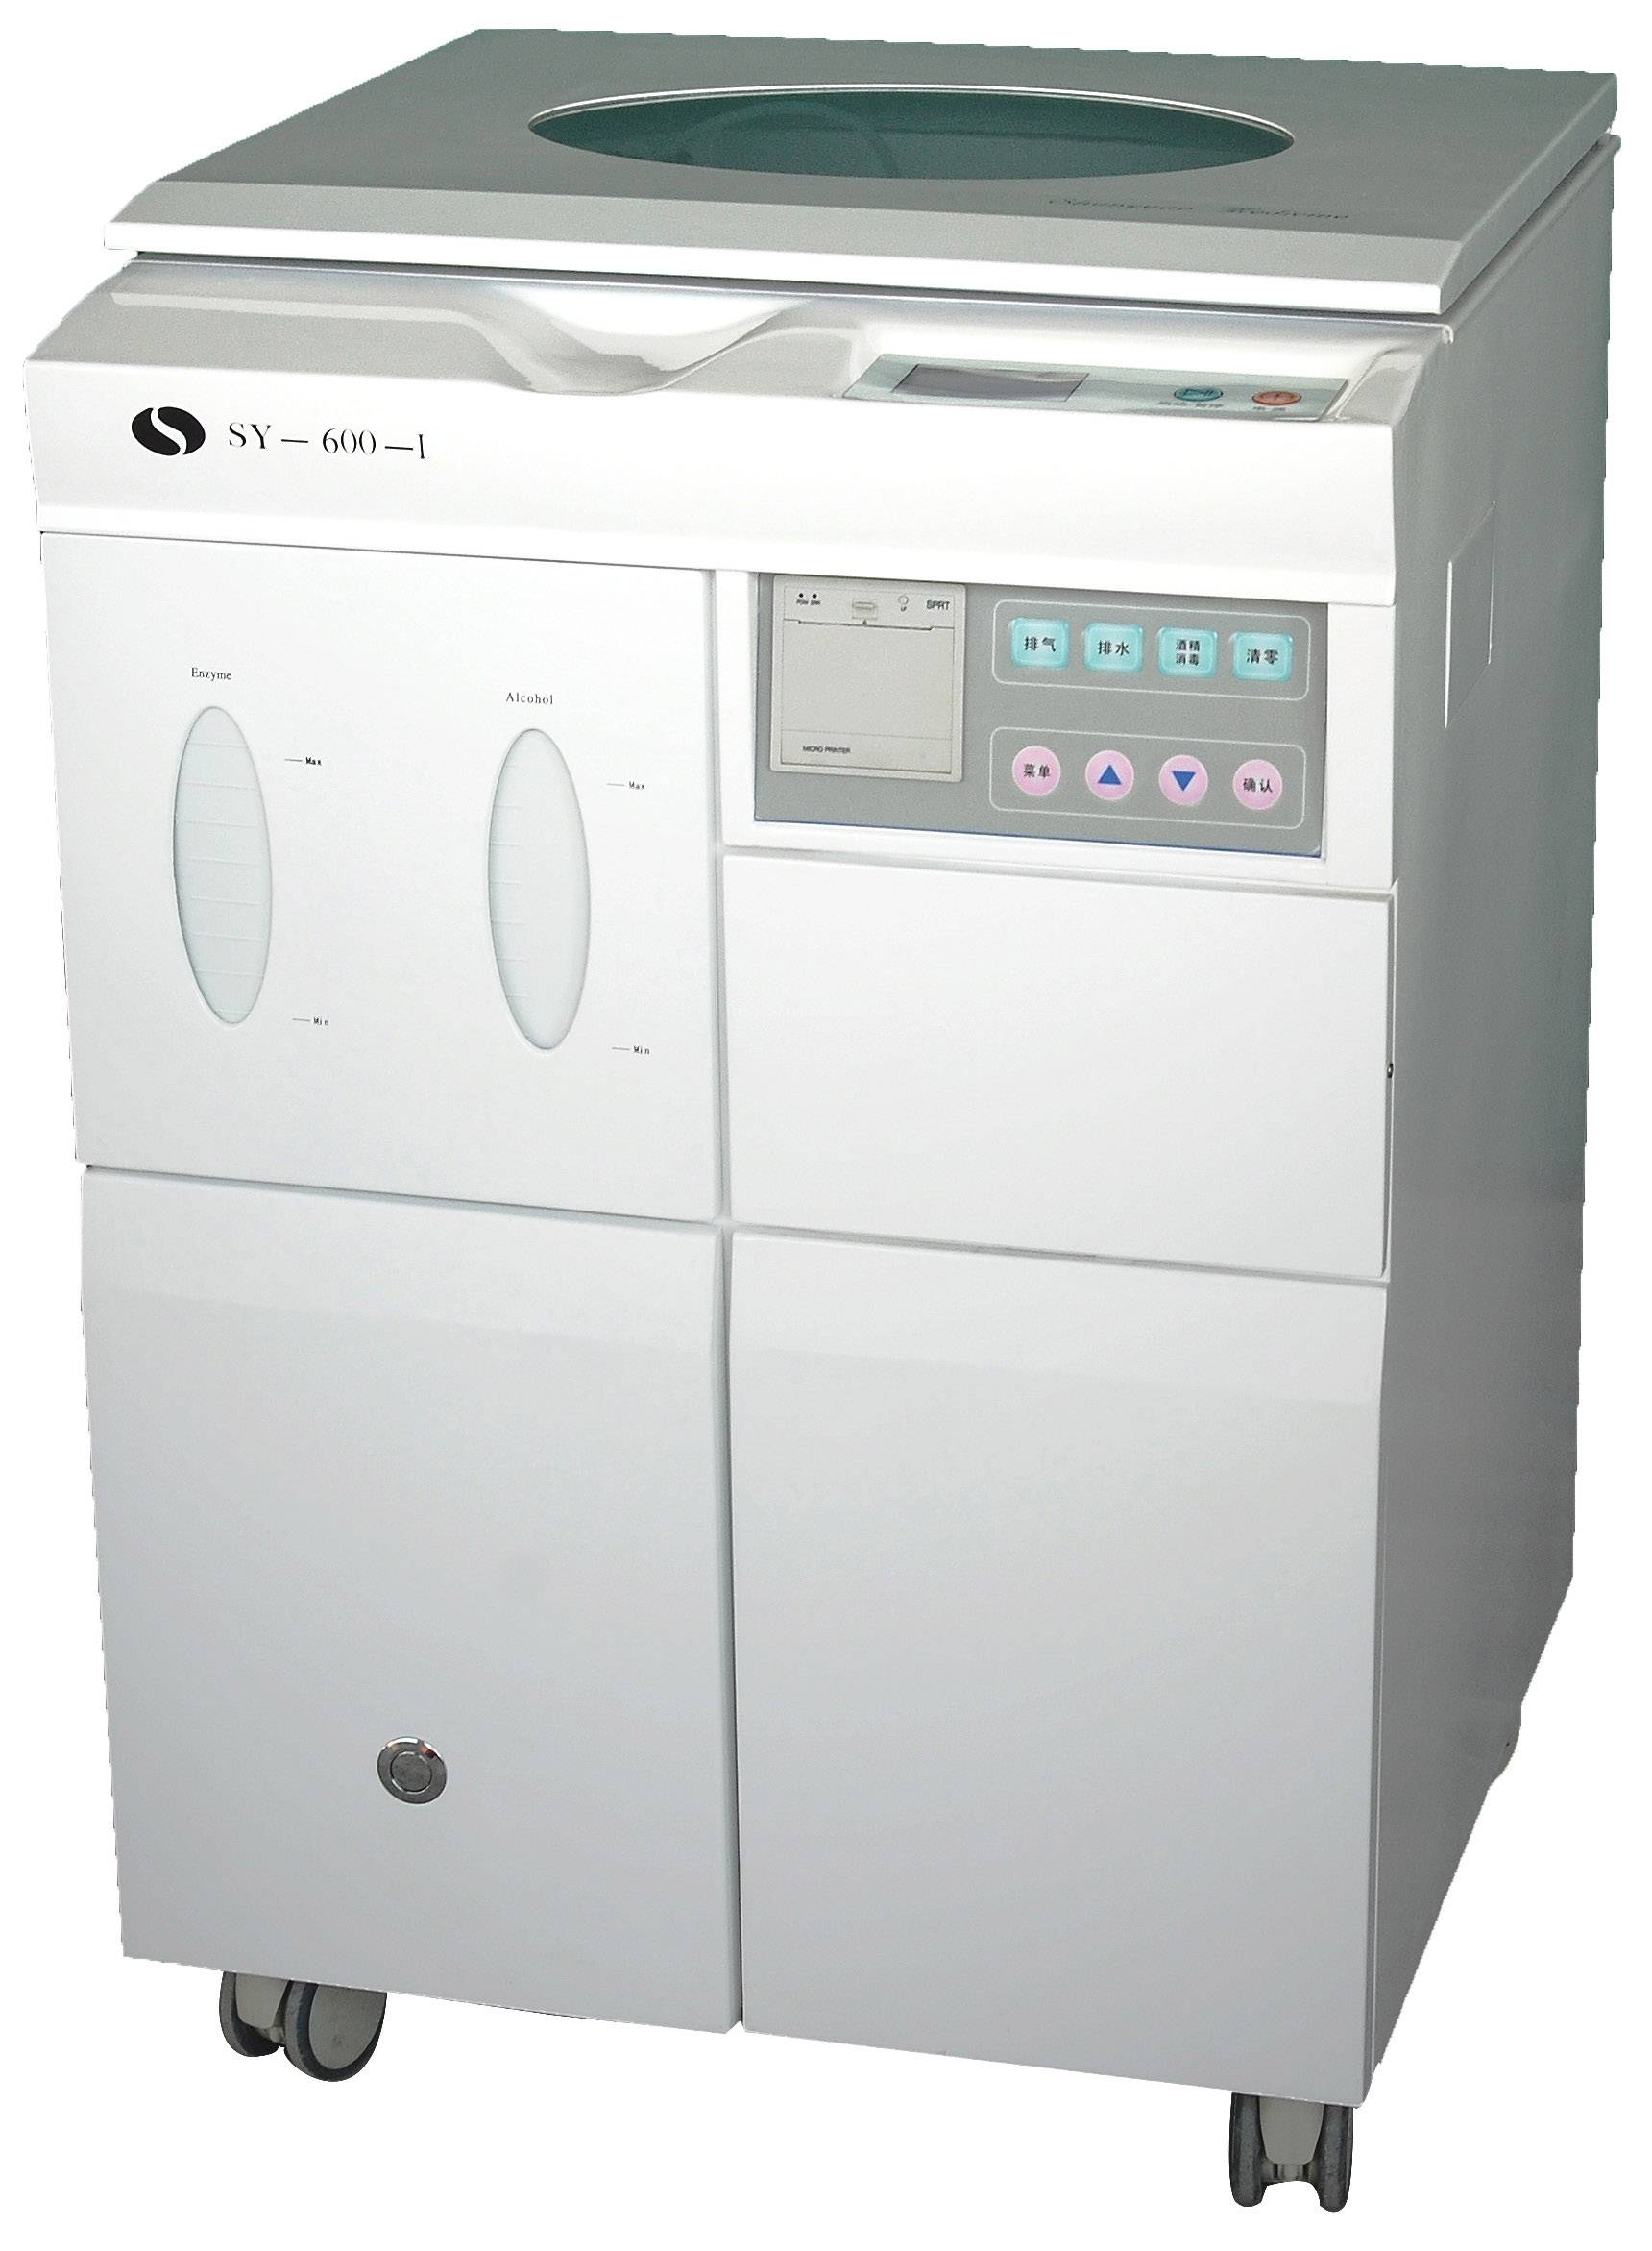 Endoscope washer and disinfector